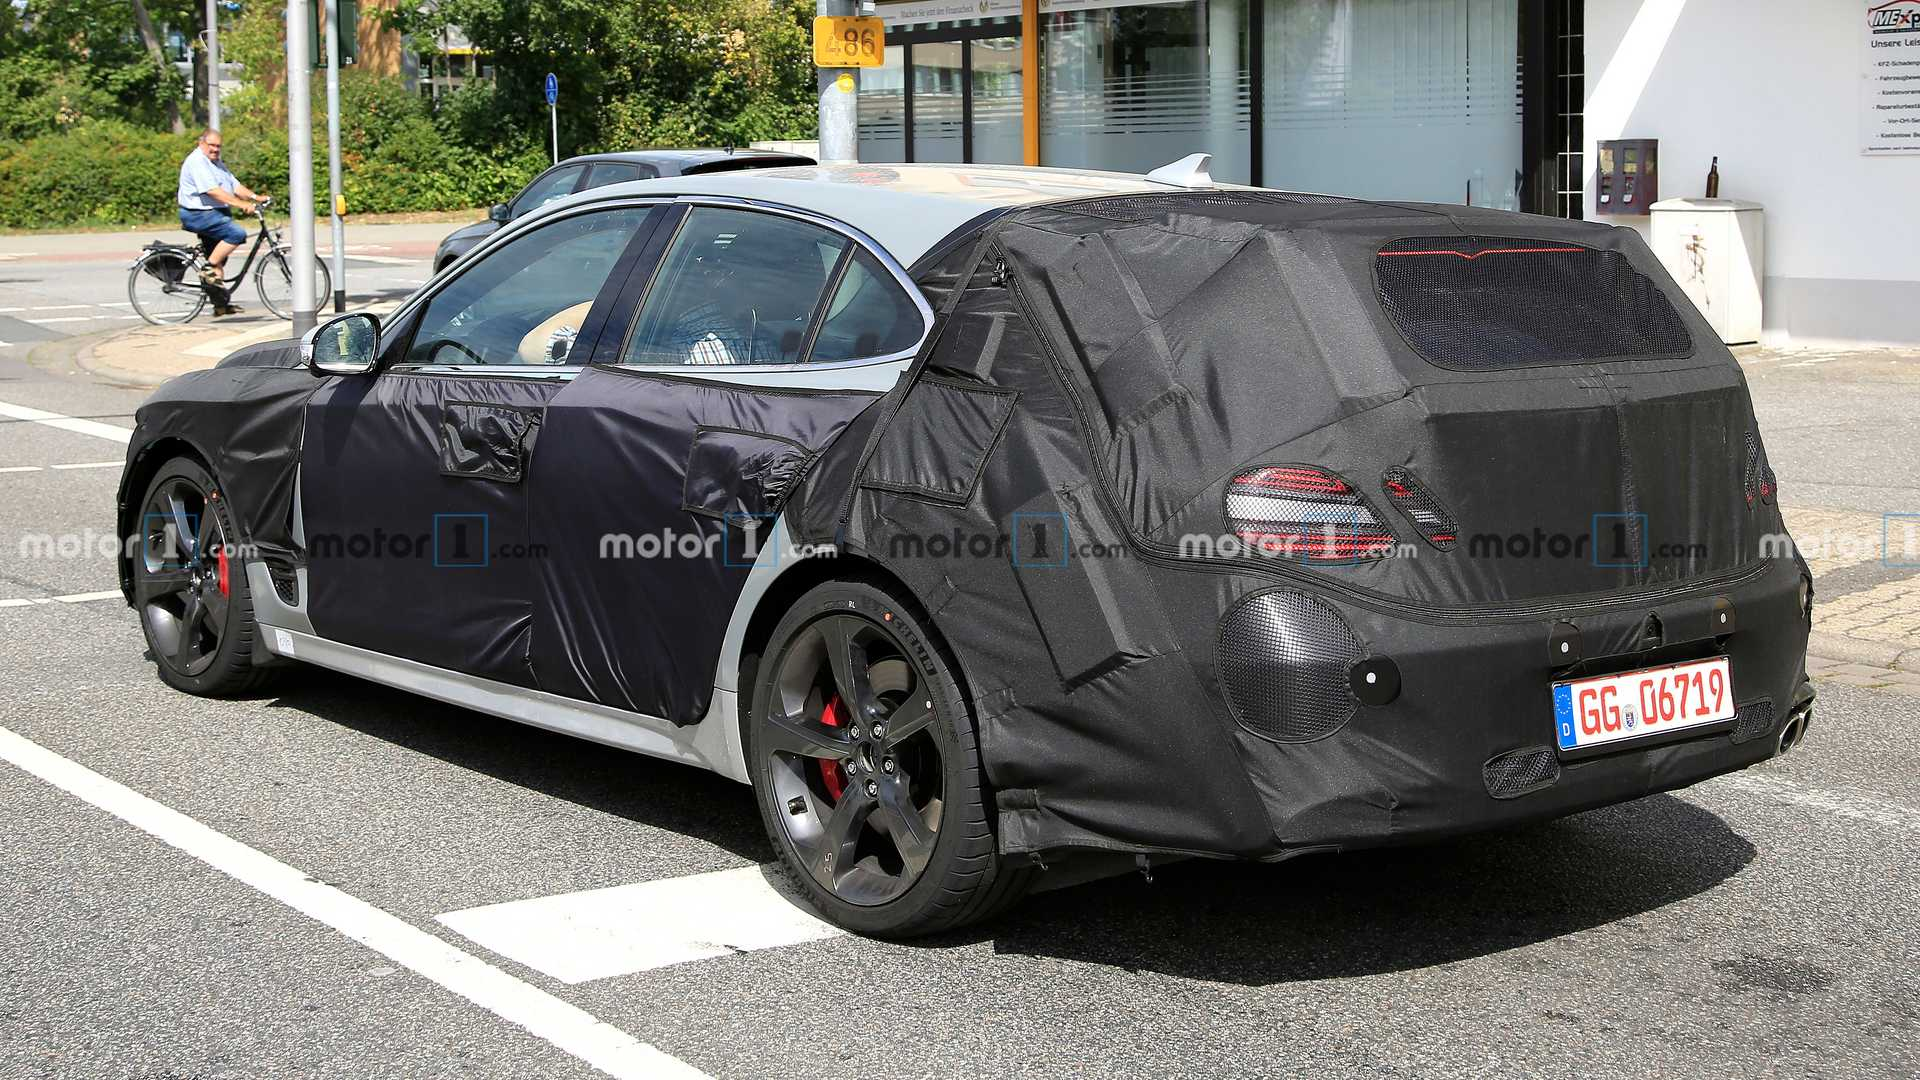 2021 - [Genesis] G70 Shooting Brake Genesis-g70-shooting-brake-wagon-spied-rear-angle-view